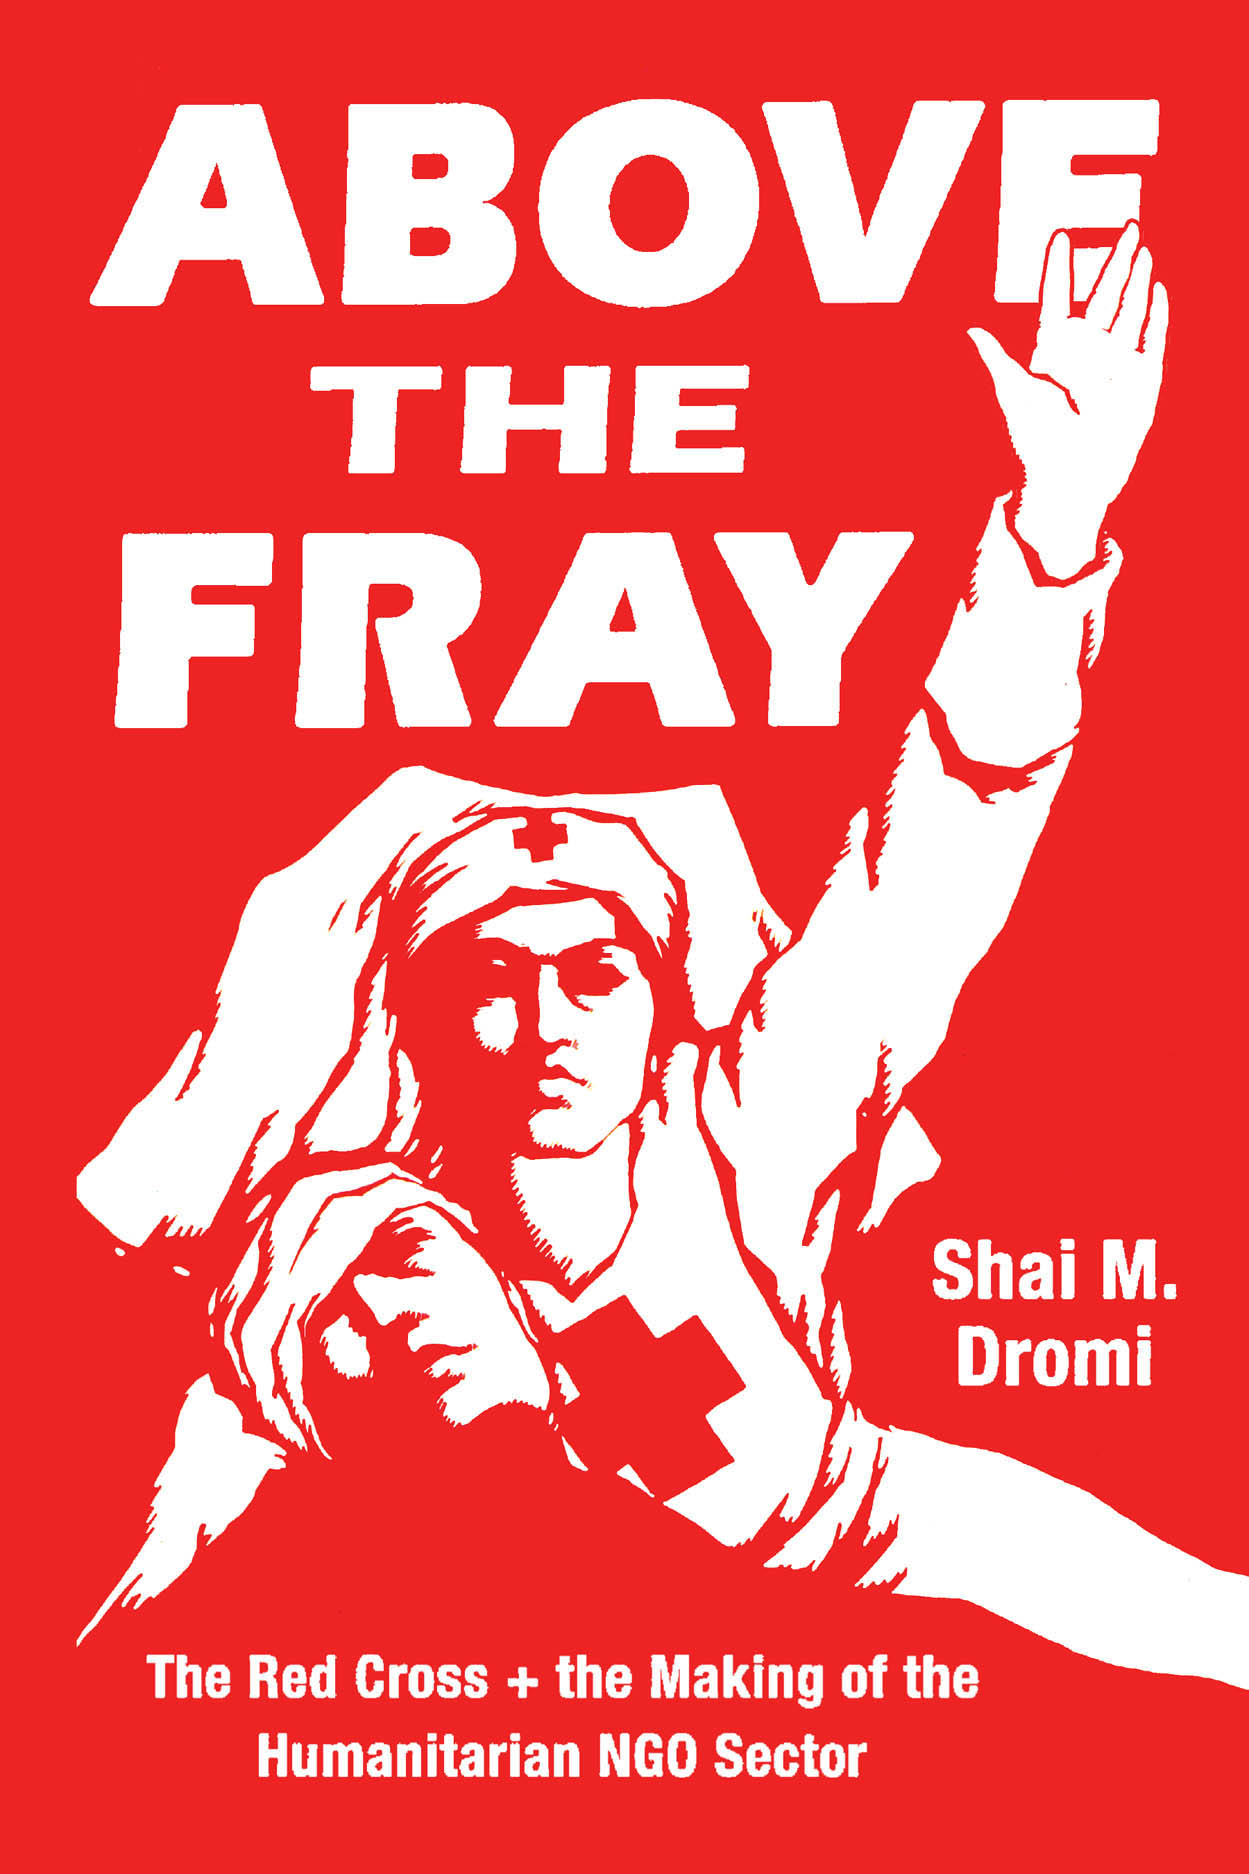 Above the Fray: The Red Cross and the Making of the Humanitarian NGO Sector